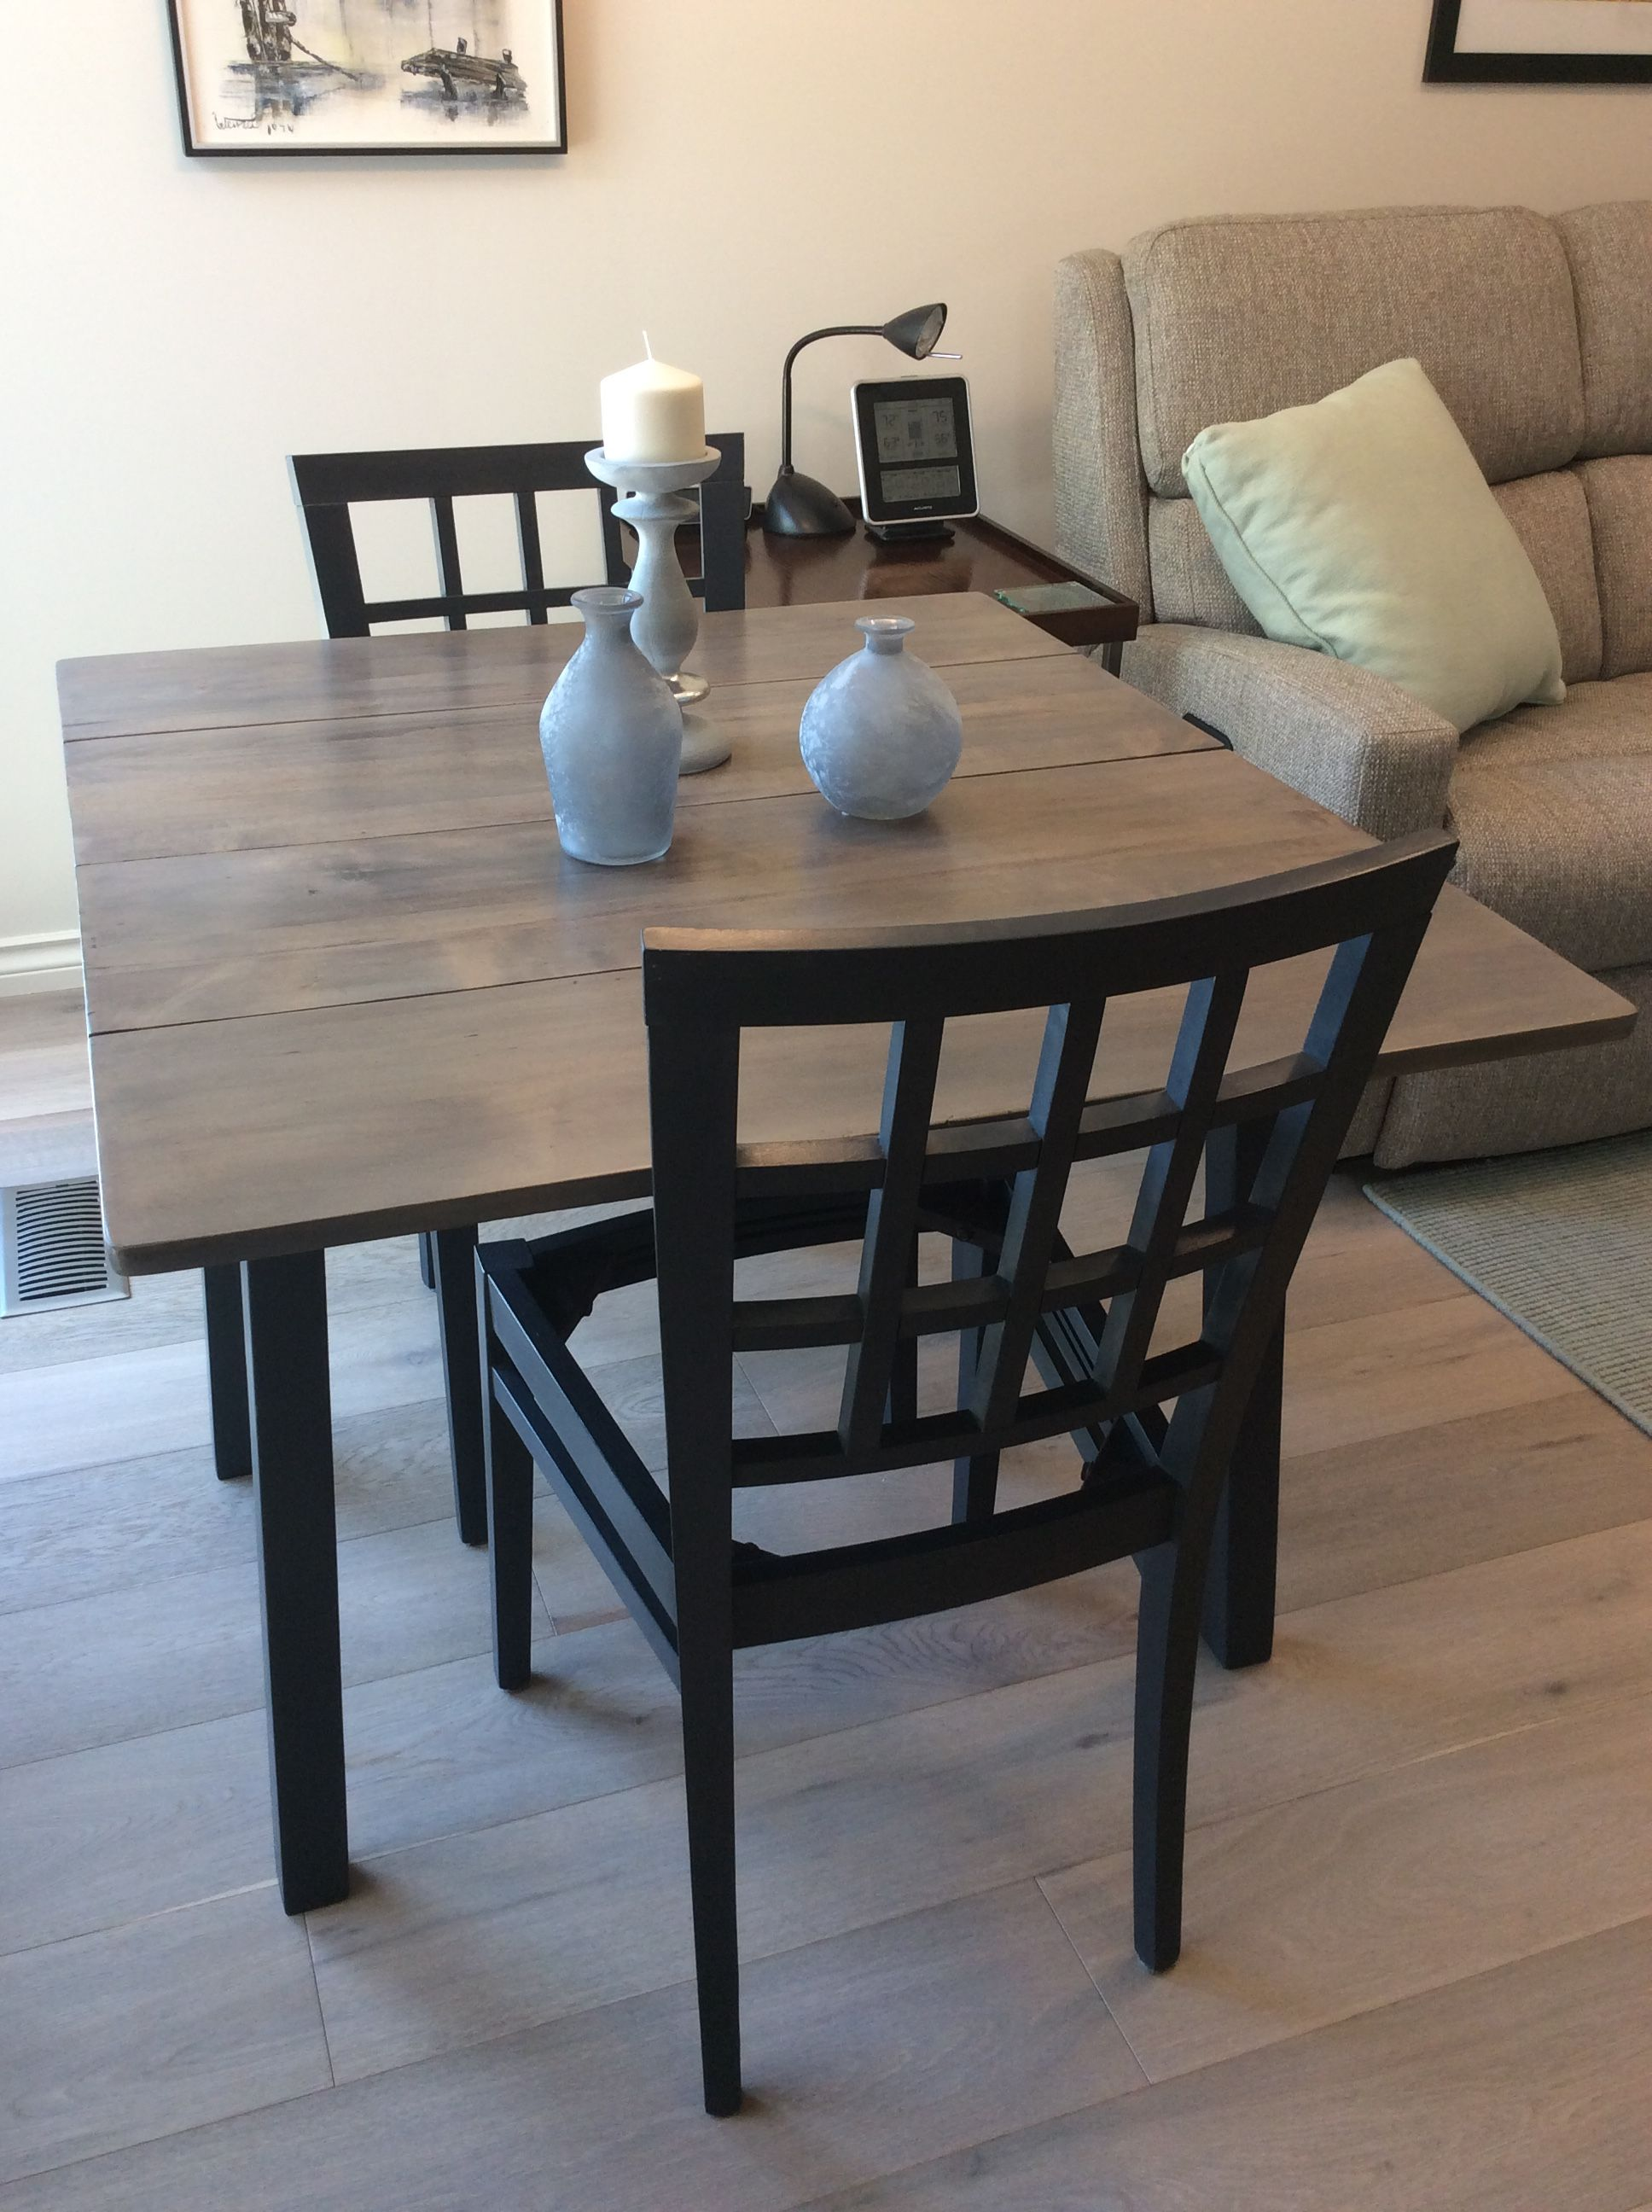 Painted Table And Chairs With Annie Sloan Chalk Paint In Graphite Washed Top